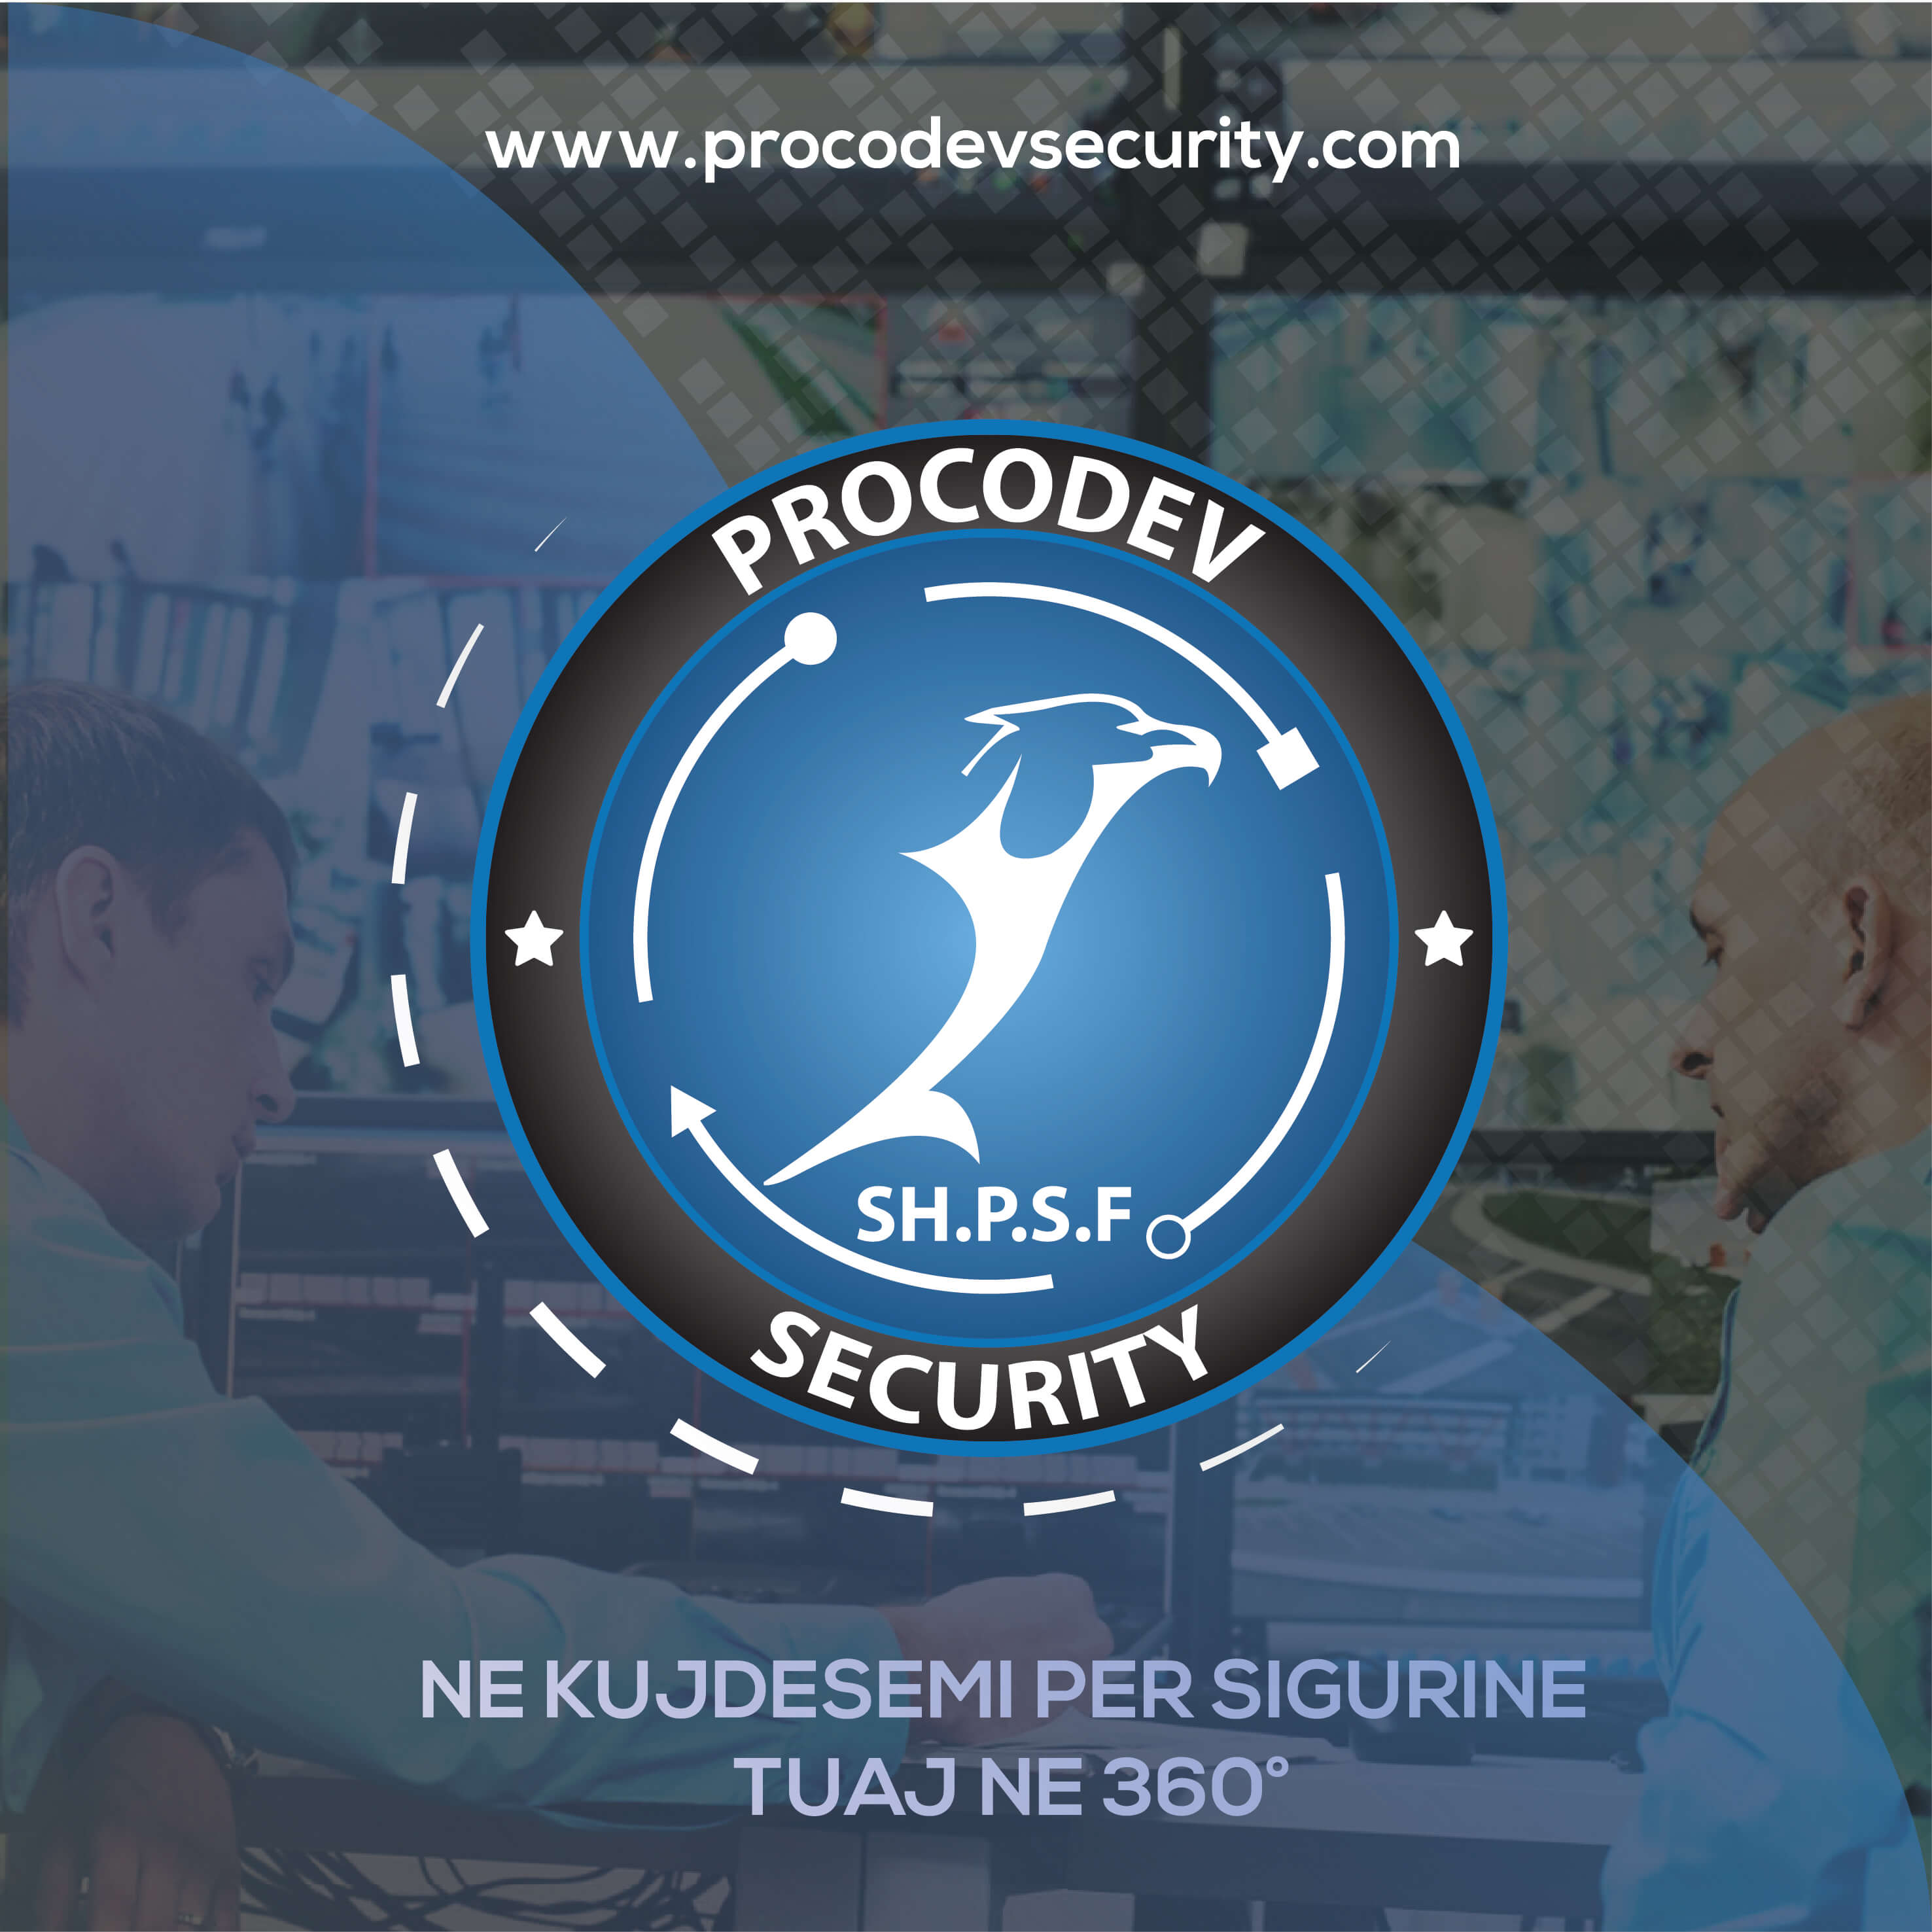 Procodev Security